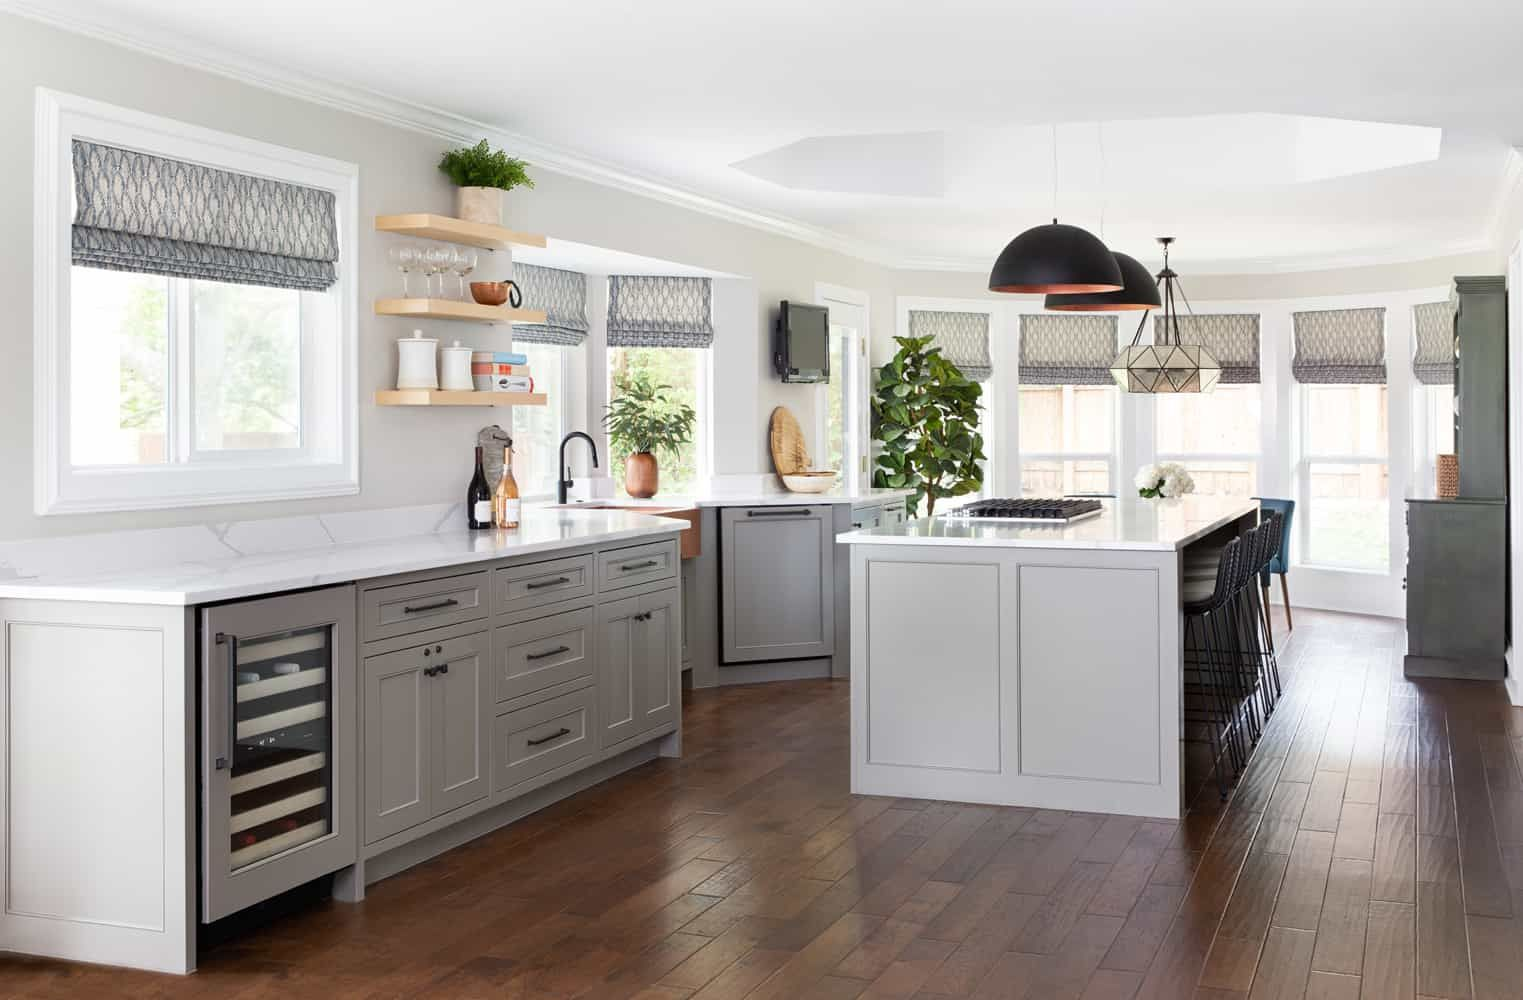 Kitchen Cabinet Painting Sherwin Williams Sw 7047 Porpoise In 2020 Painting Cabinets Kitchen Cabinets Painting Kitchen Cabinets